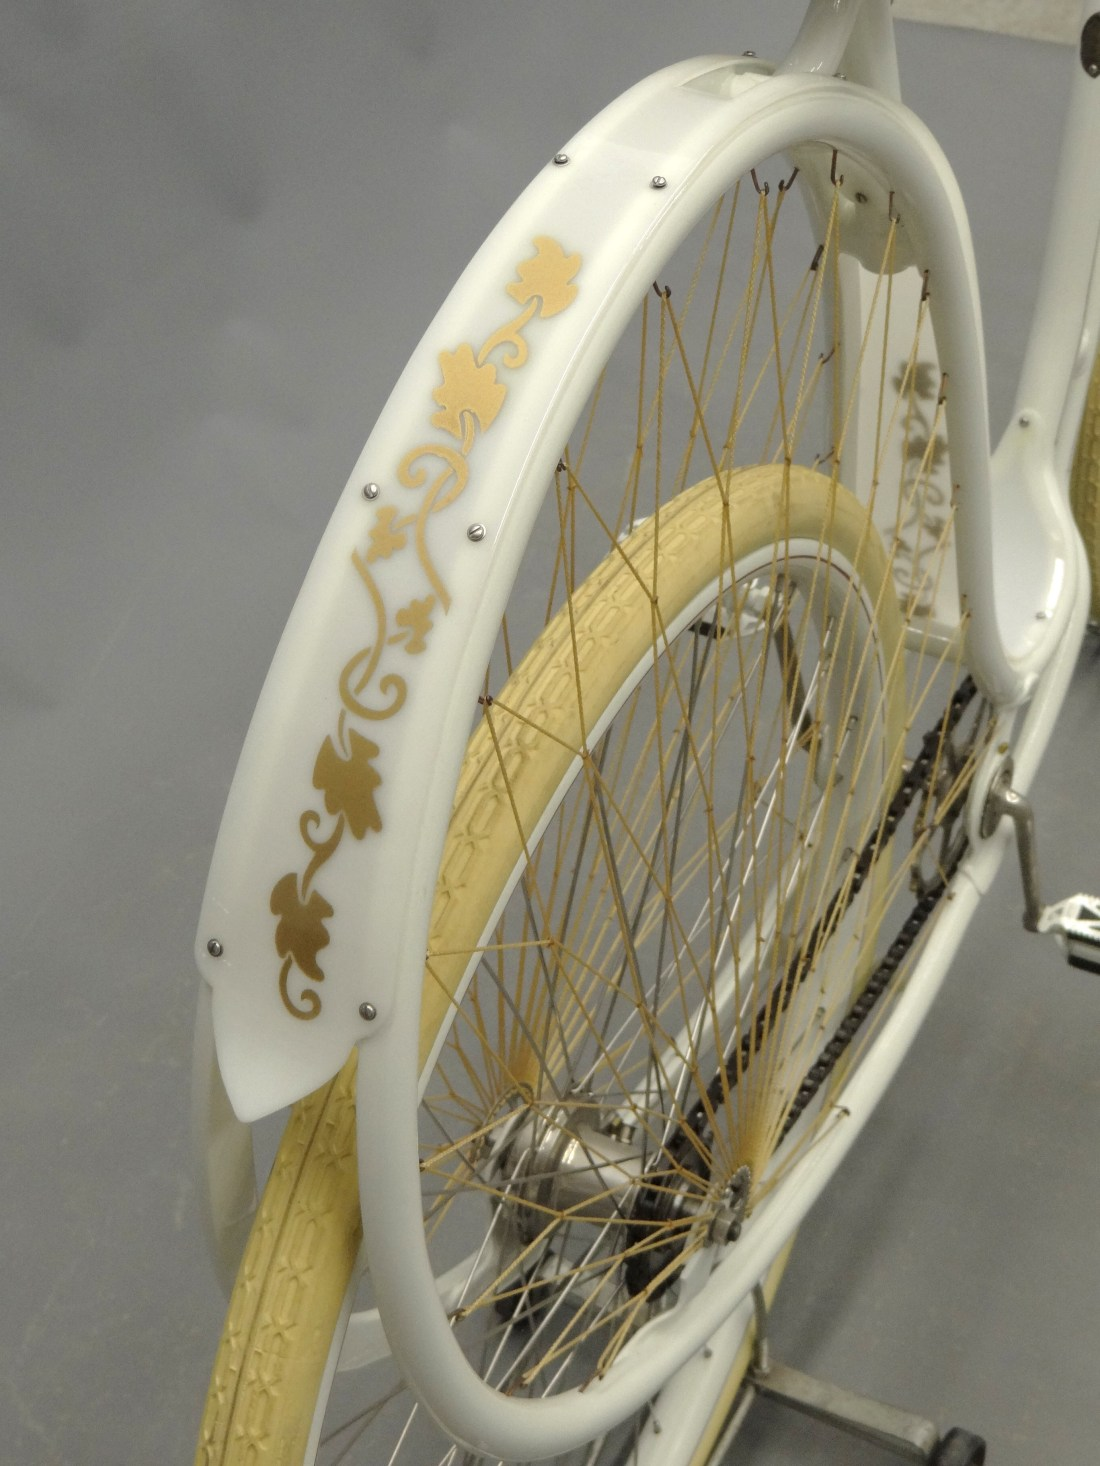 """A detail shot of the back wheel of the 1898 Cygnet """"Swan"""" Ladies pneumatic safety bicycle, which shows decorative gold vines painted on the back fender."""